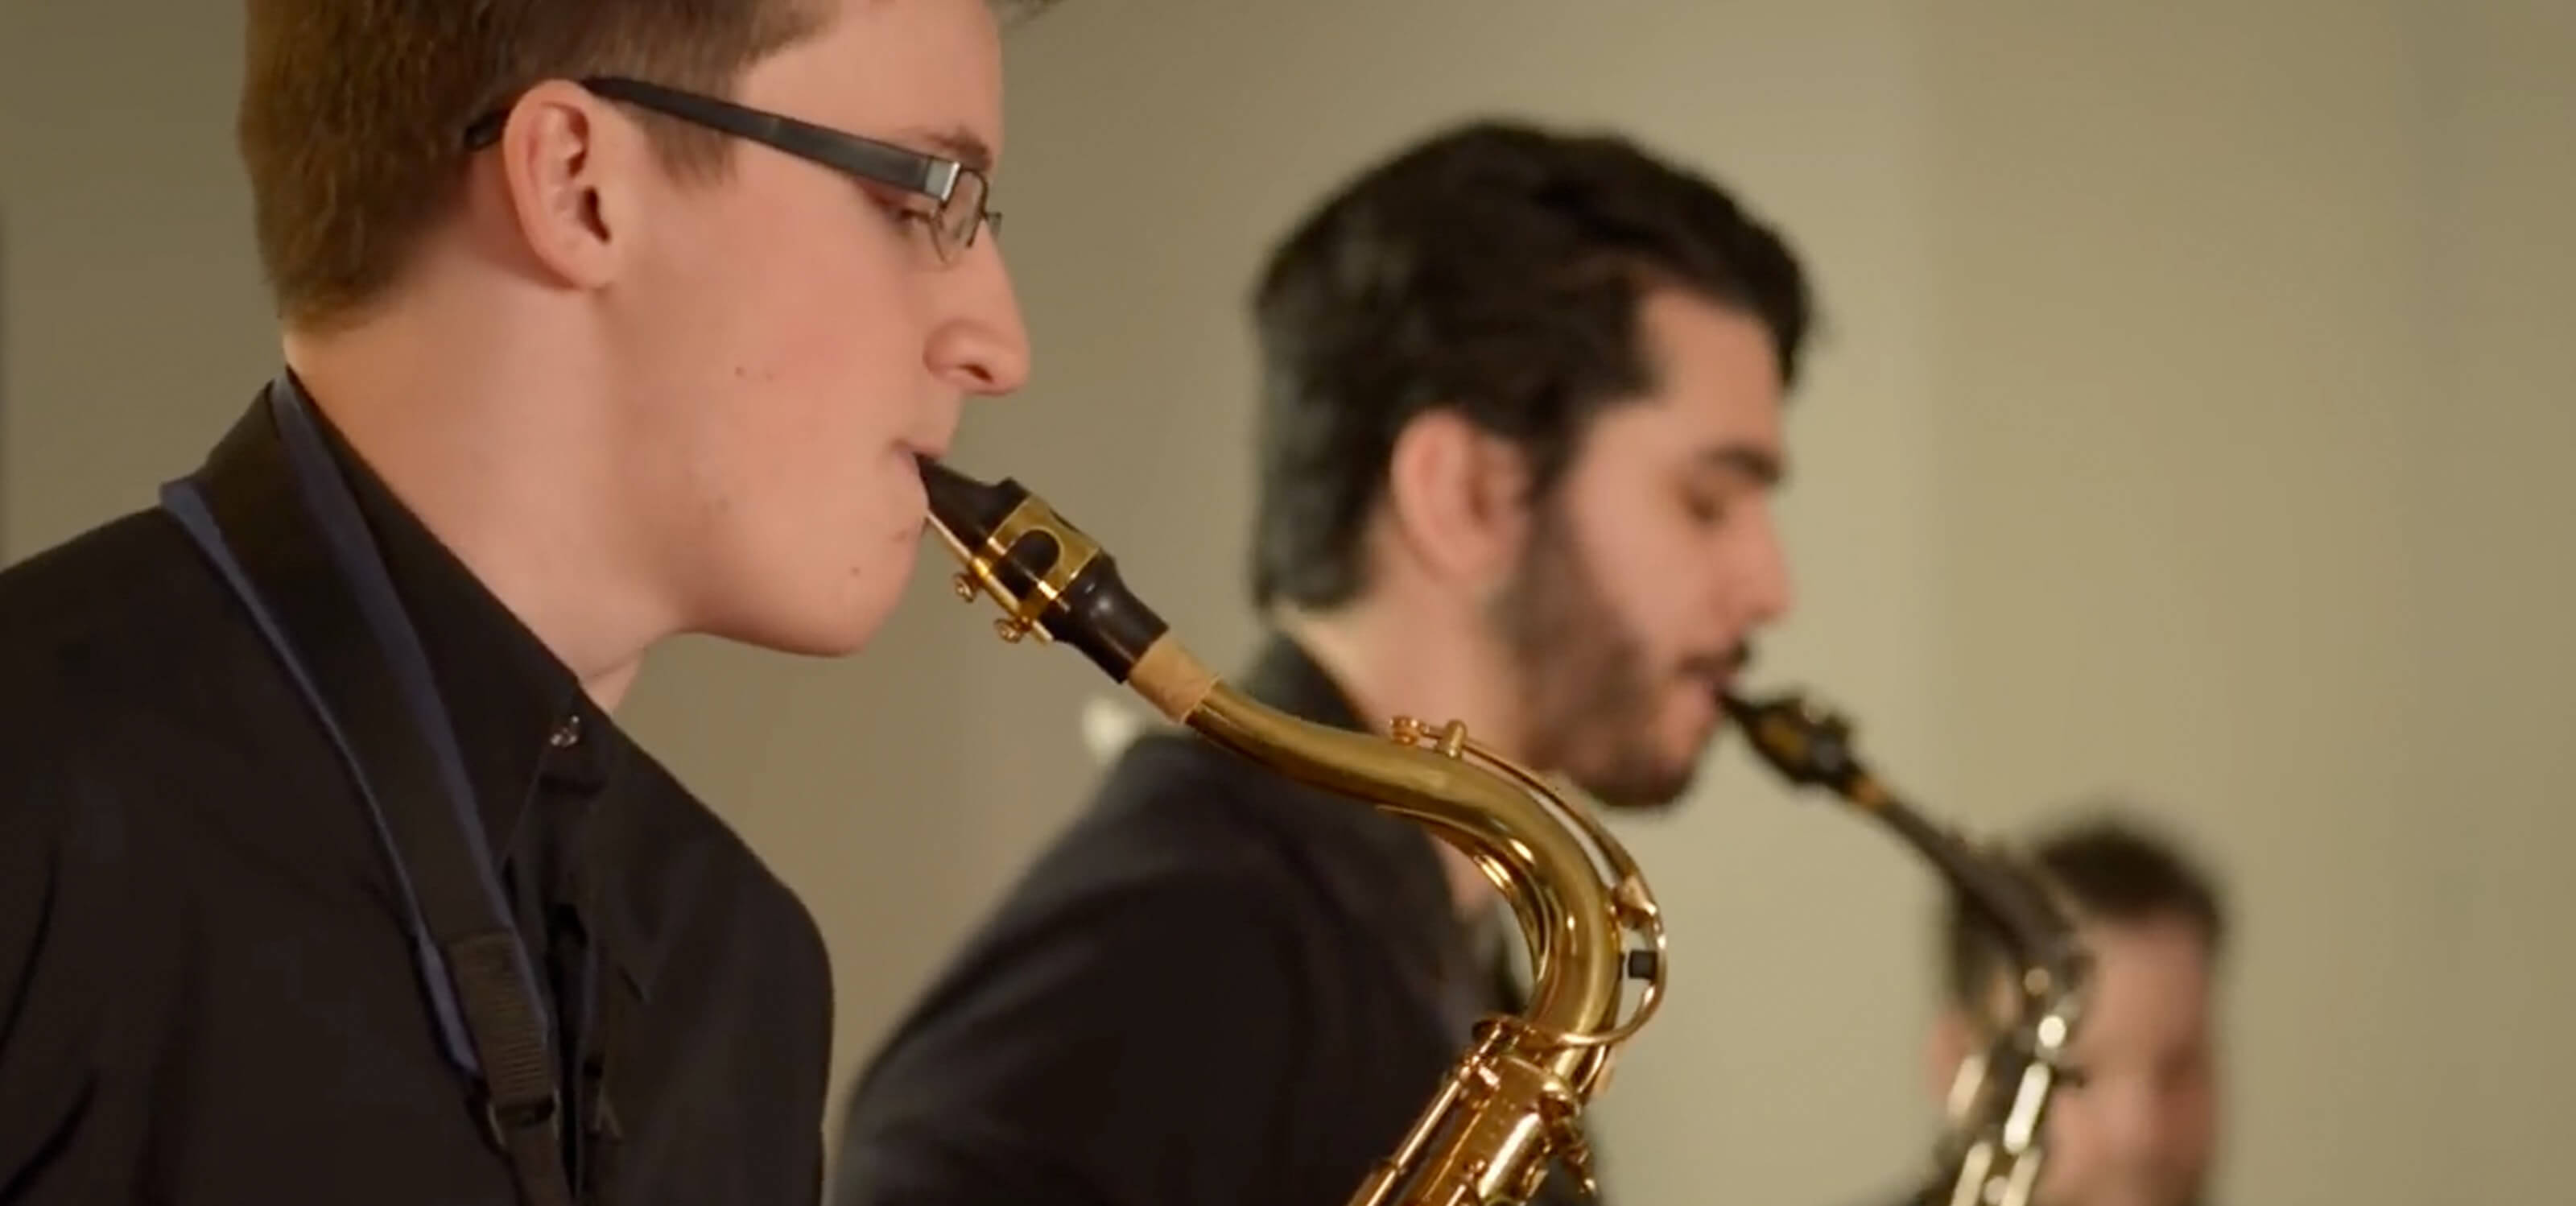 Screenshot from the DigiPen Jazz video All Good, featuring students playing saxophones